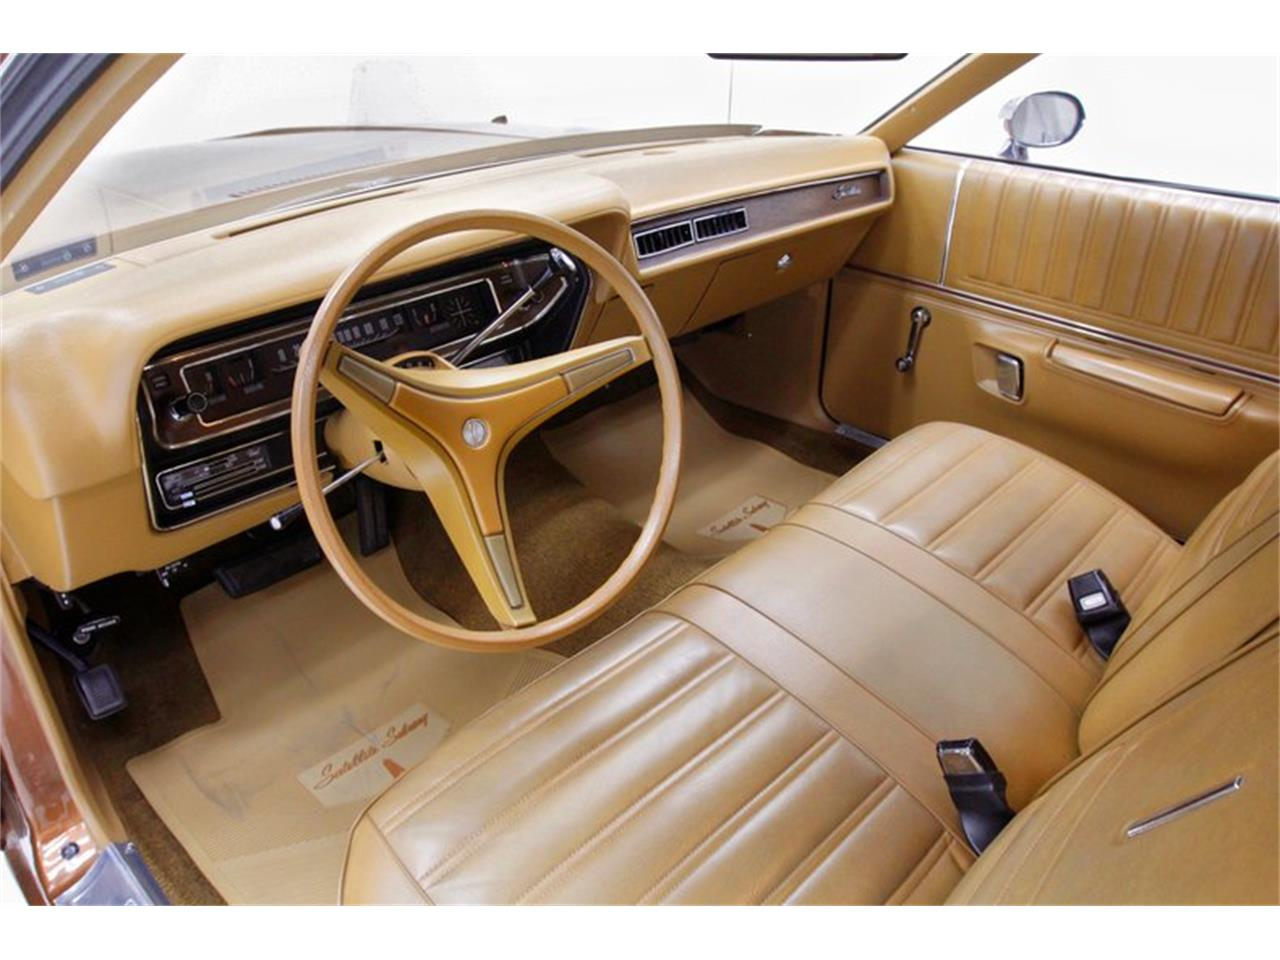 1972 Plymouth Satellite for sale in Morgantown, PA – photo 24